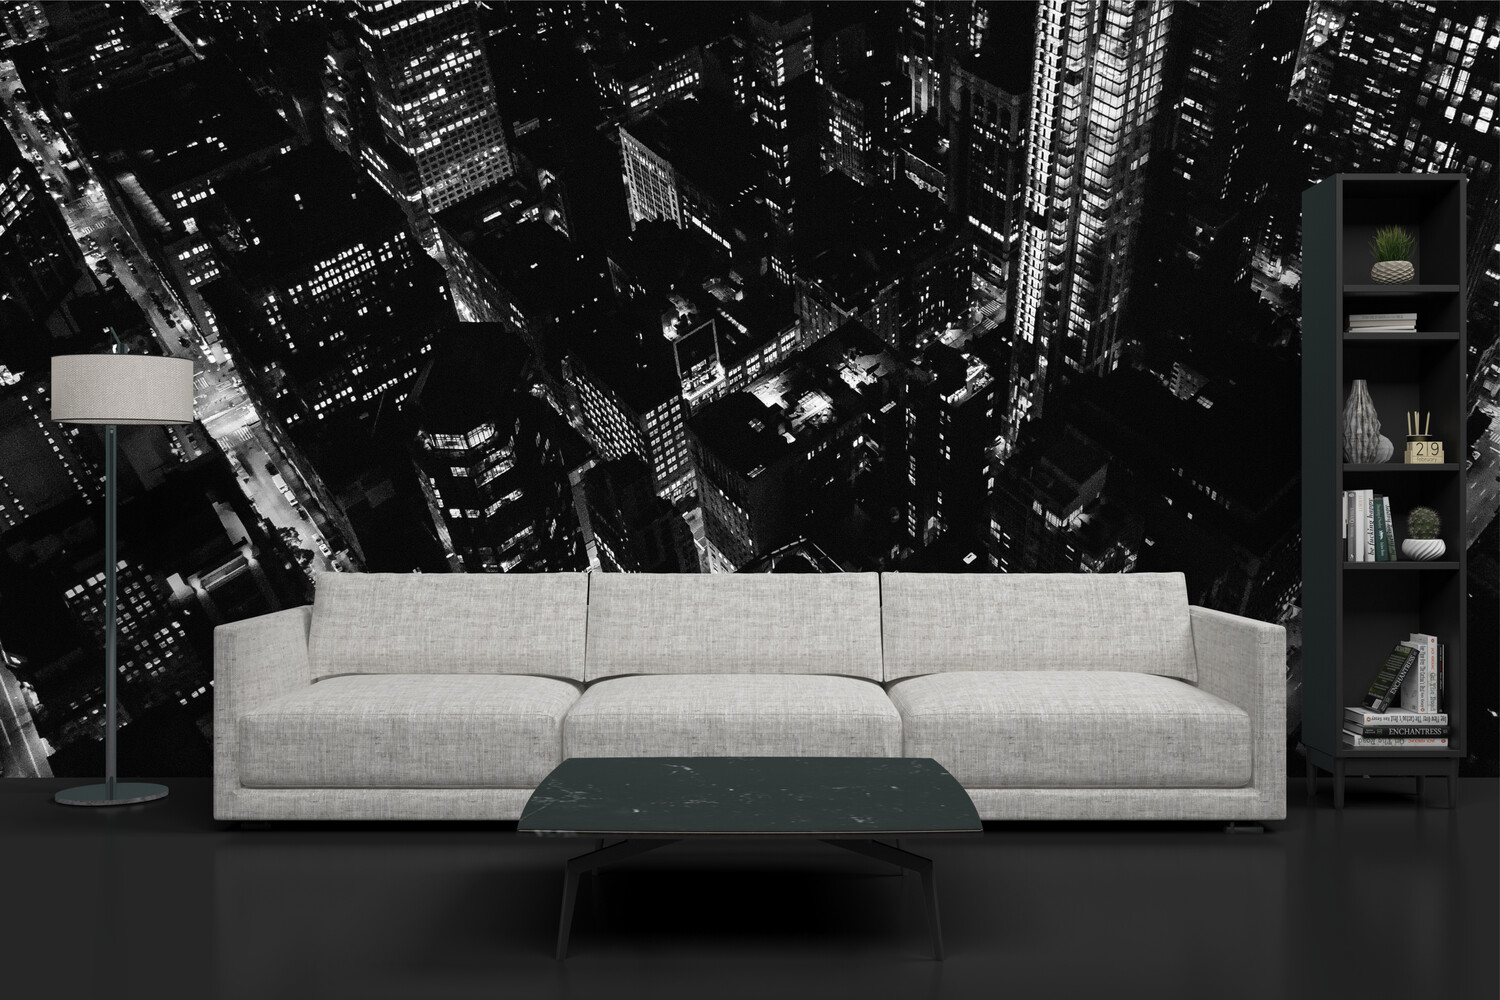 BLACK & WHITE CITY | Vinyl Wall Mural for Any Room | Removable Vinyl Wallpaper